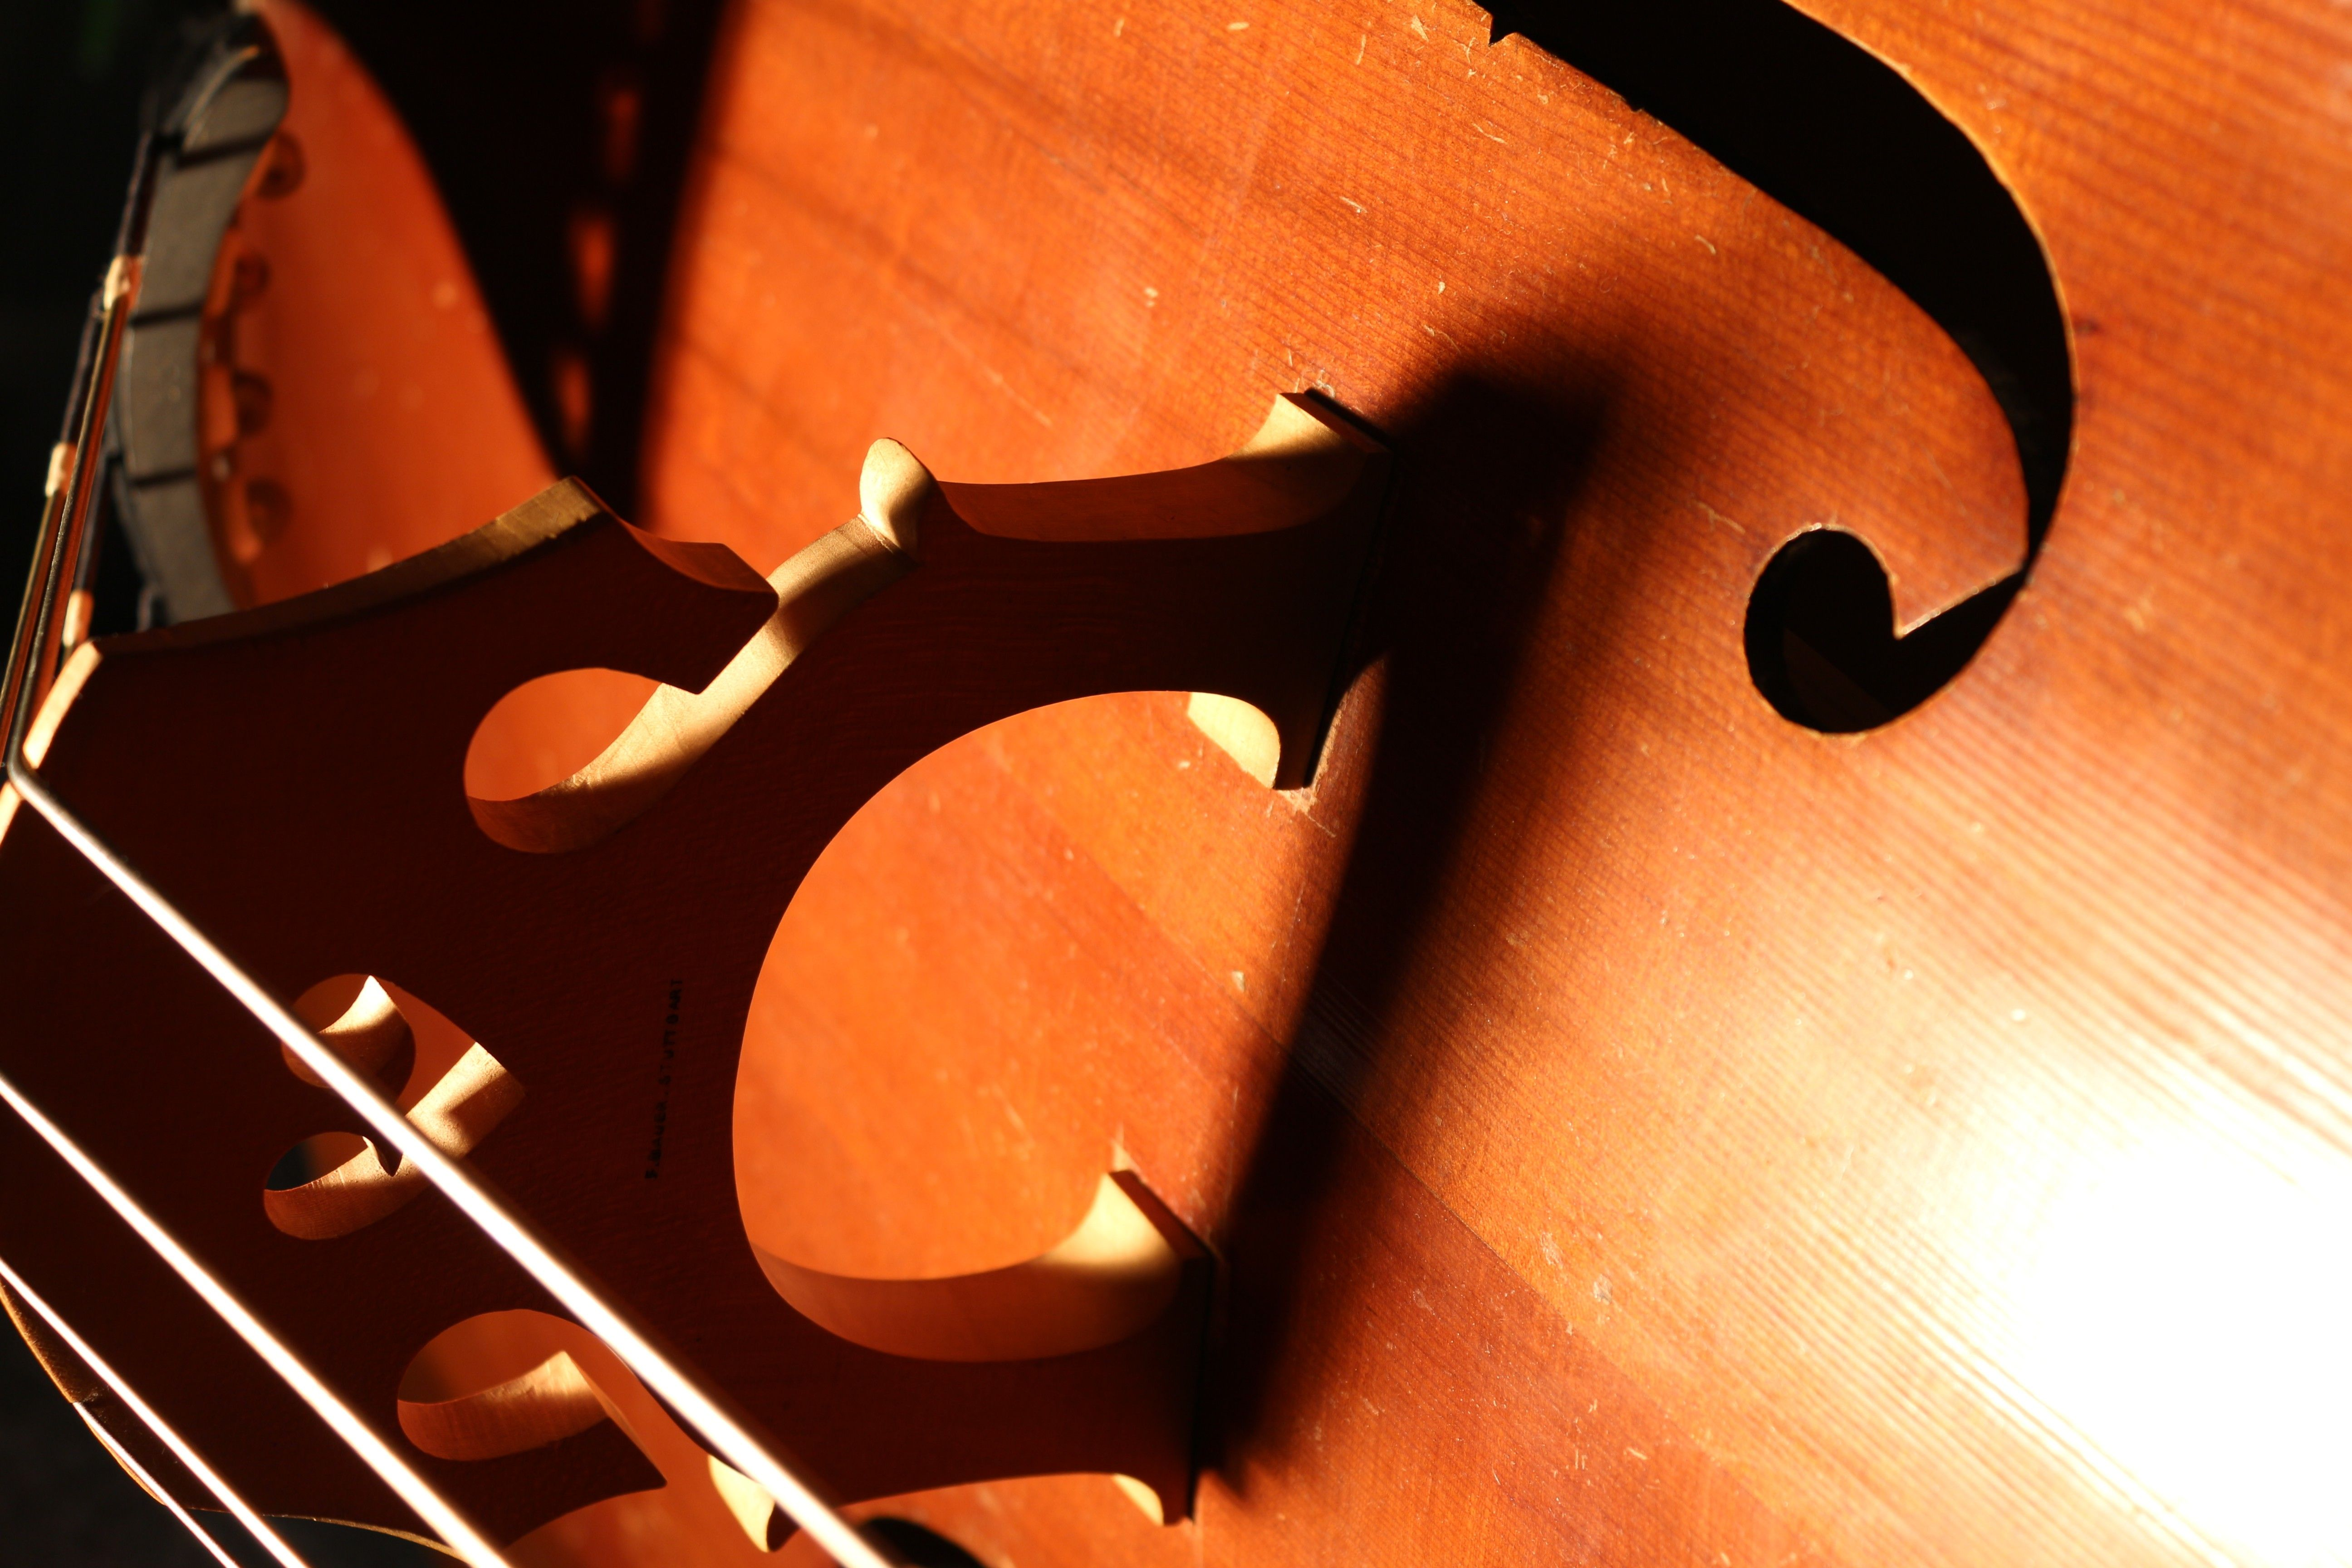 brown, bass, Instruments, double bass, canon eos 650d, String Bass